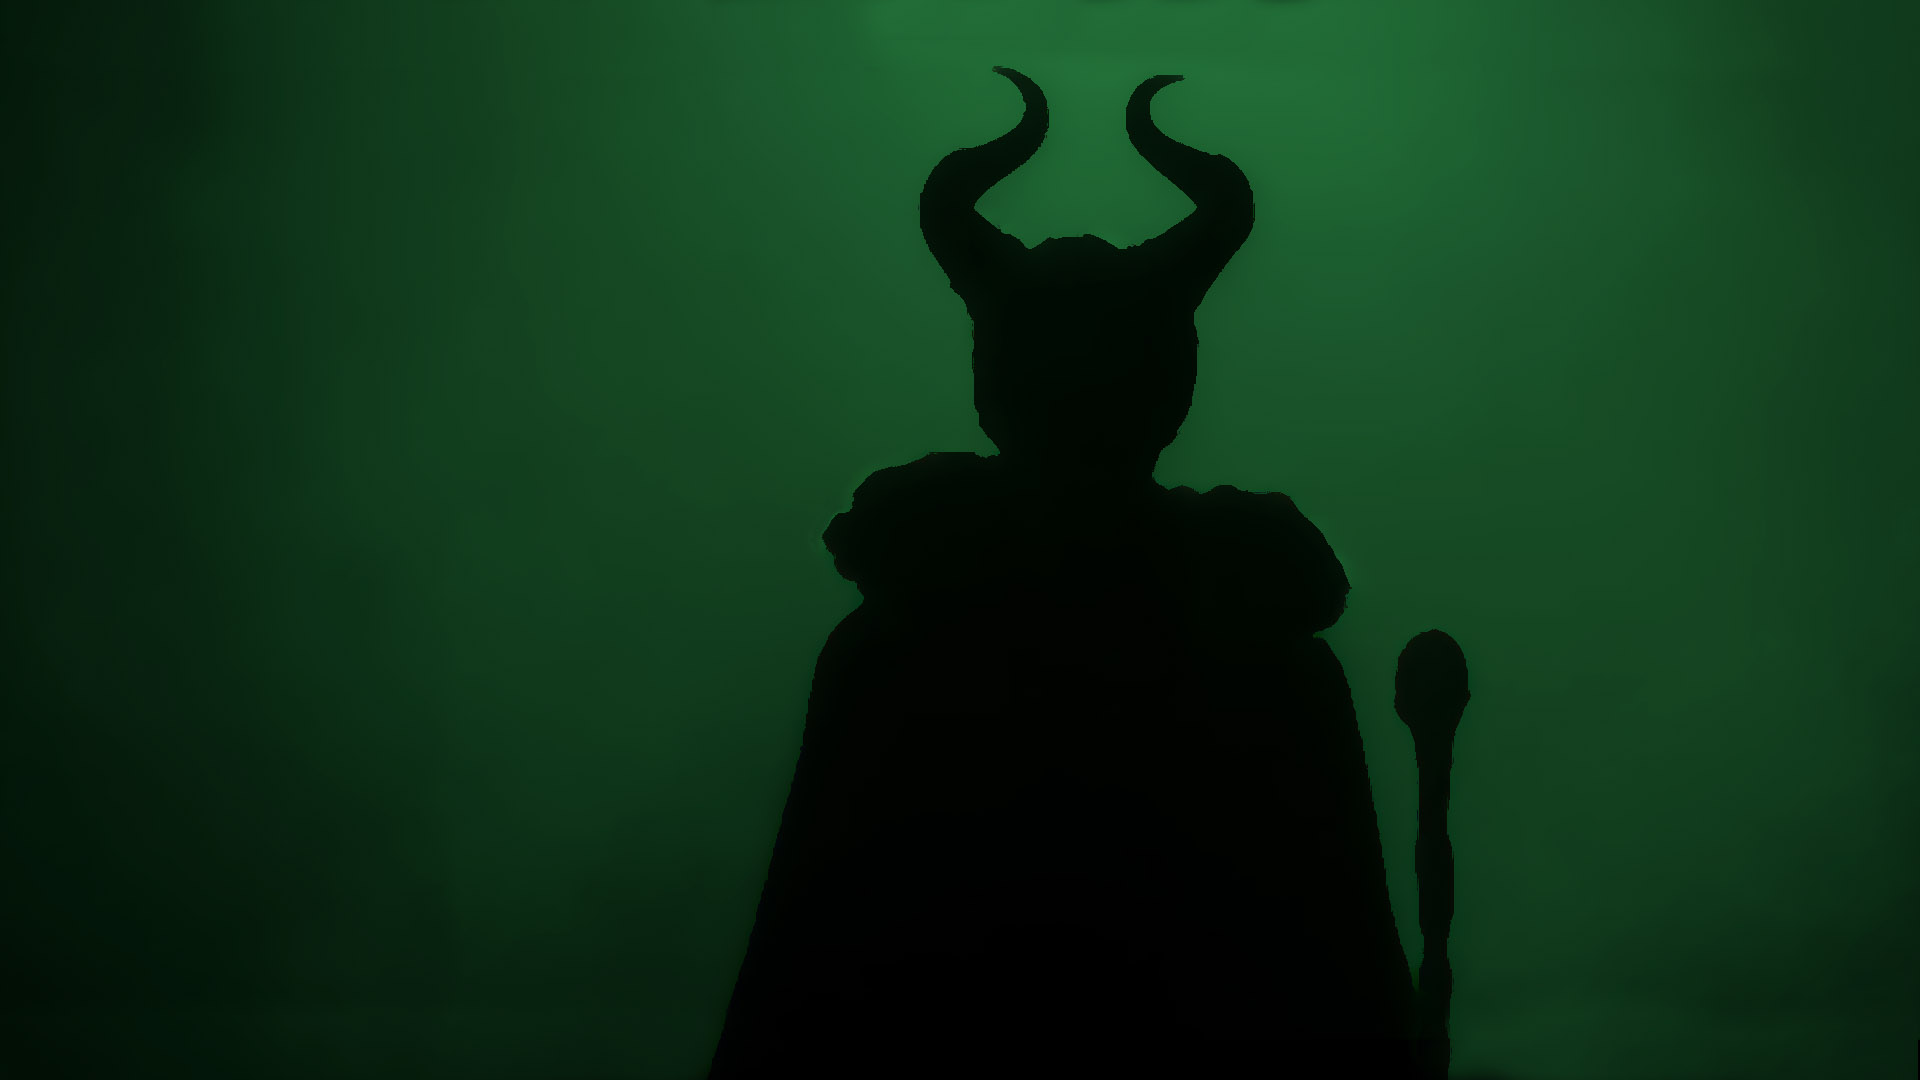 Maleficent Movie 2014 Hd Ipad Iphone Wallpapers: 9 HD Maleficent Movie Wallpapers